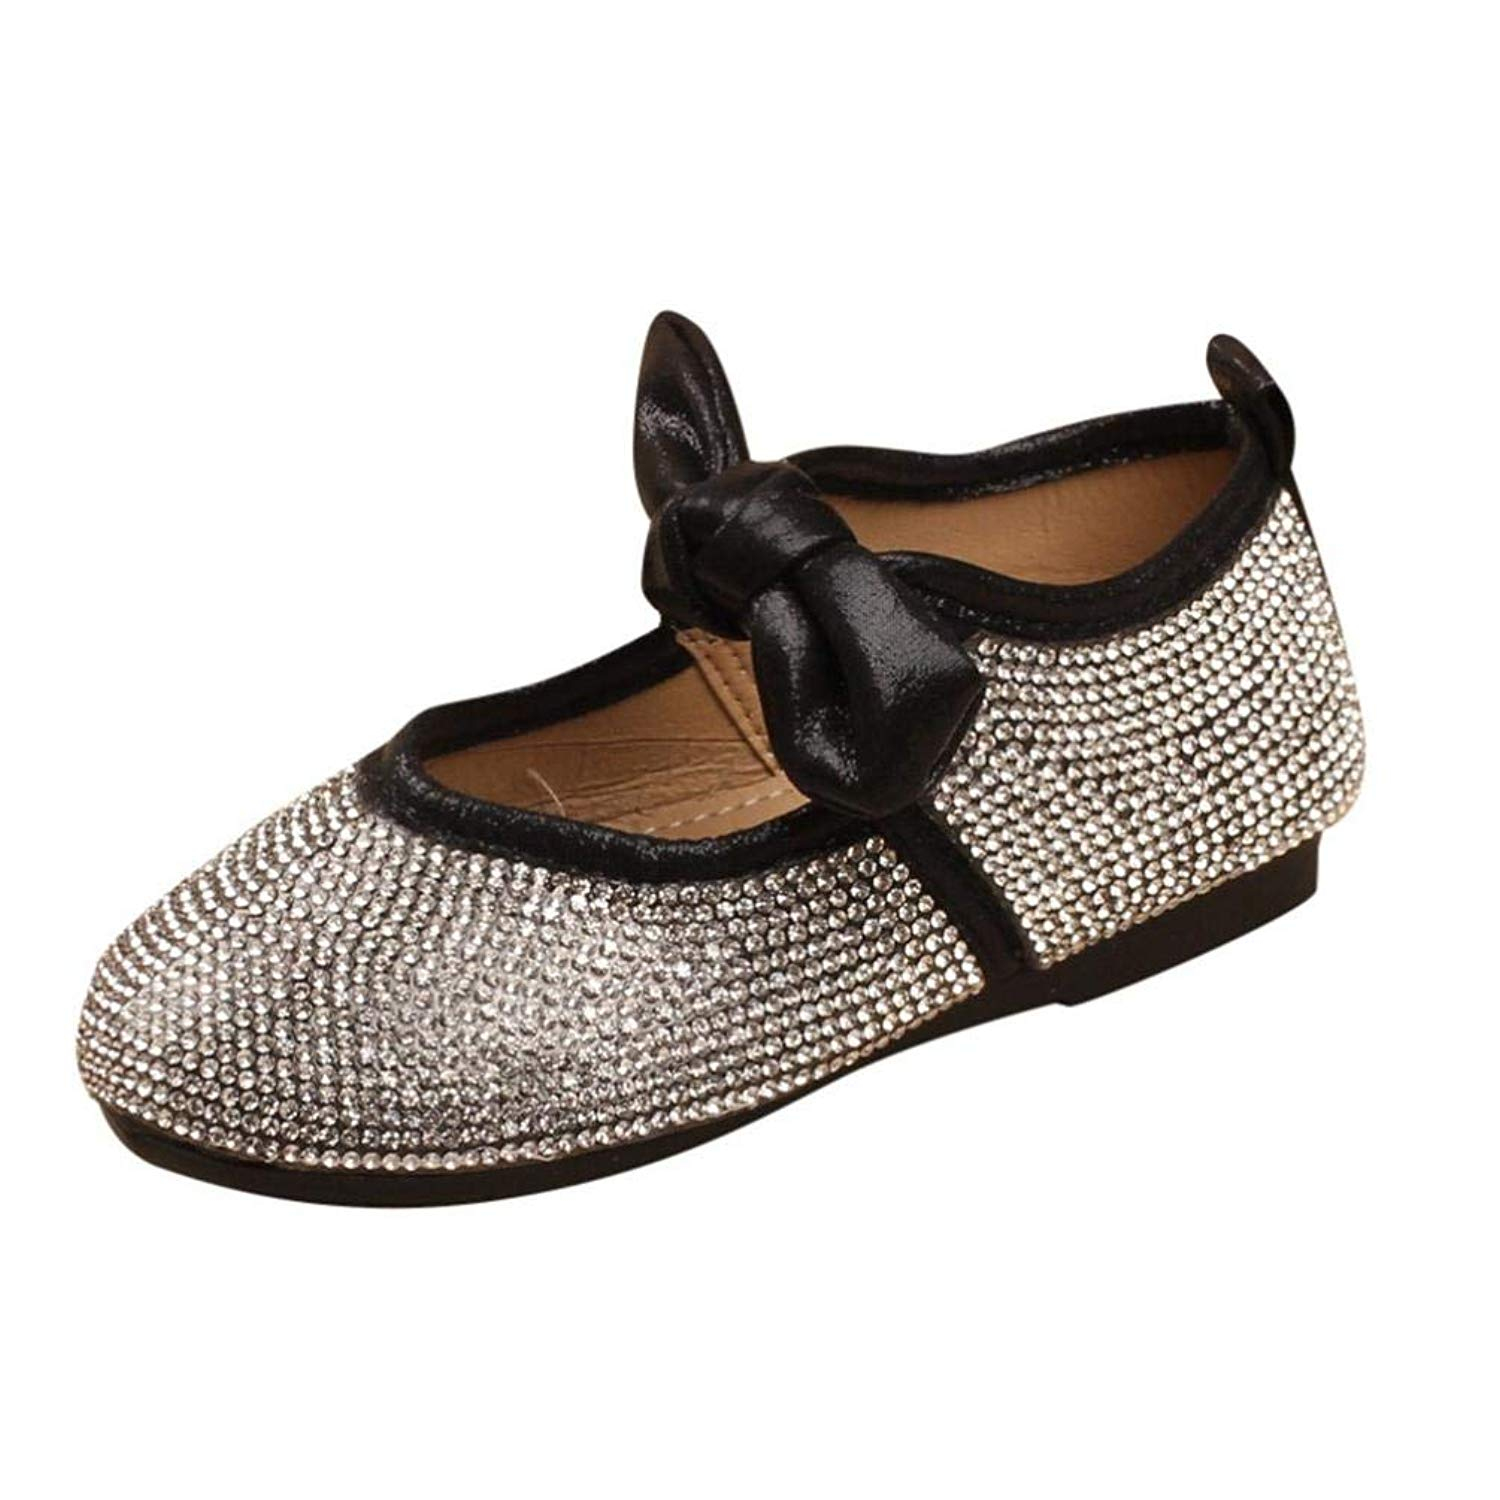 9f3656caf Get Quotations · Goodtrade8 Clearance Baby Girls Shoes Crystal Princess  Bowknot Princess Casual Little Kid Formal Shoes 18 Months